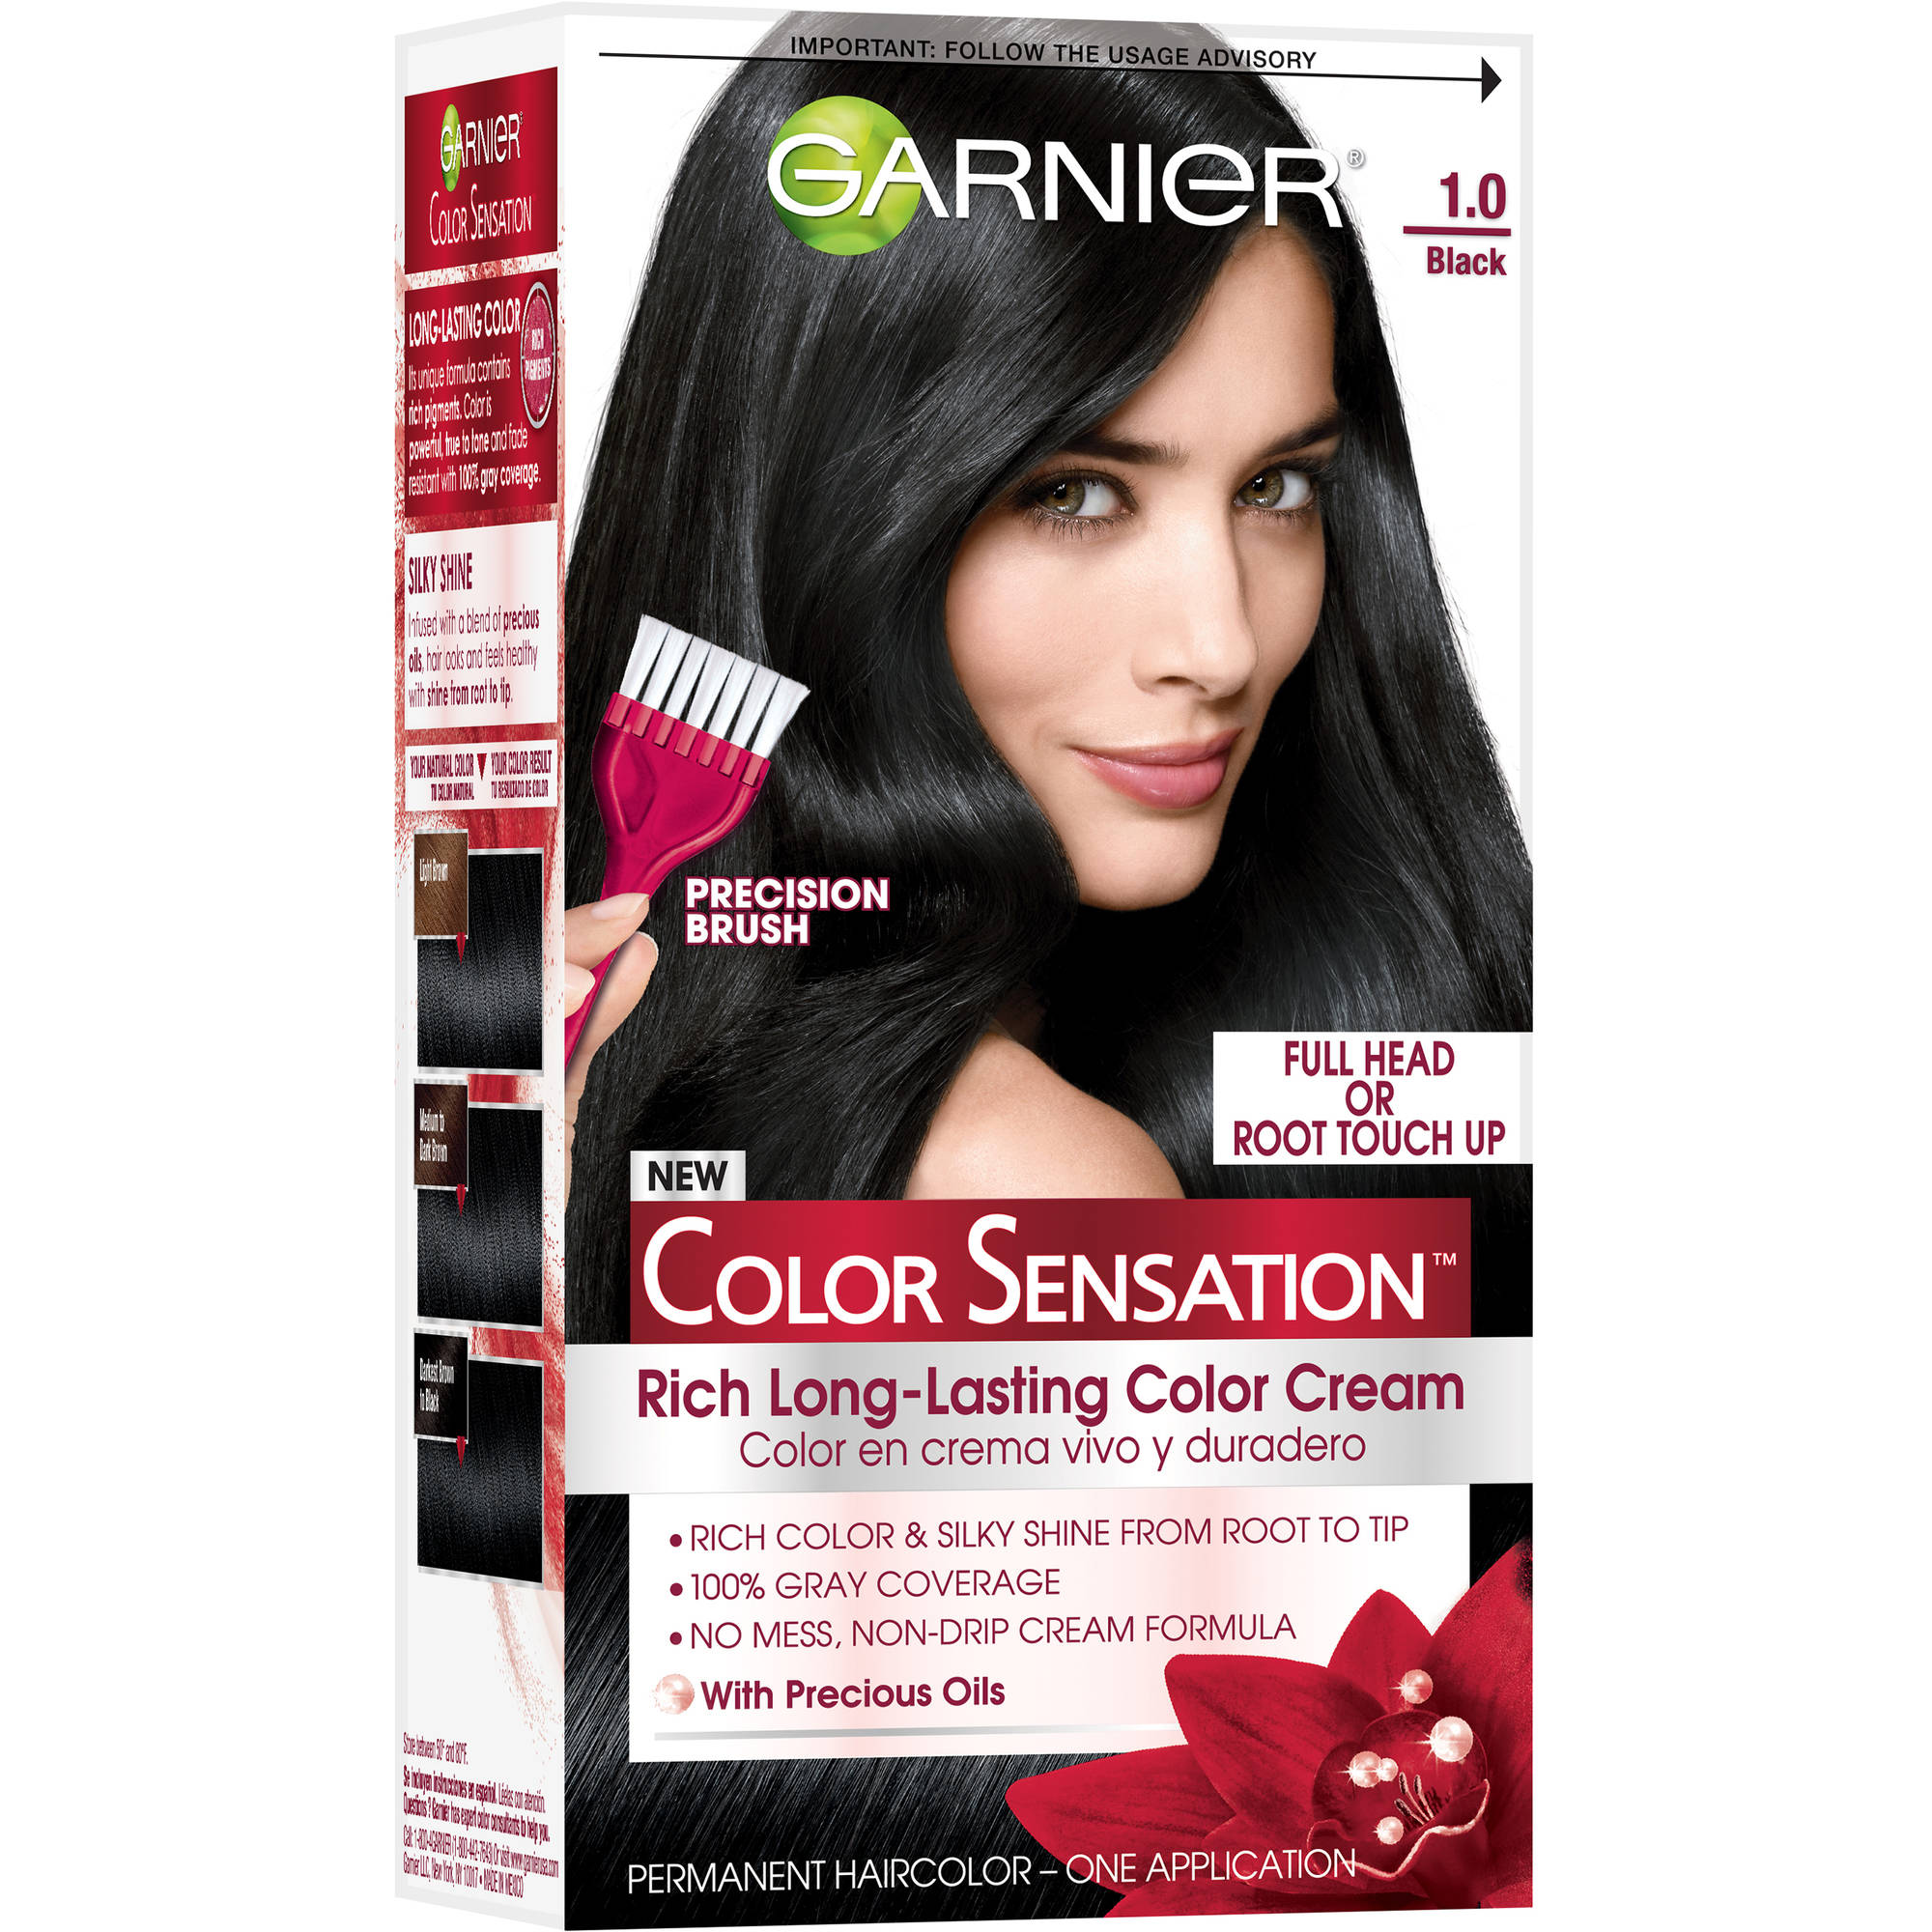 Innovative Loreal Natural Black Hair Dye Ways - The haircut community.